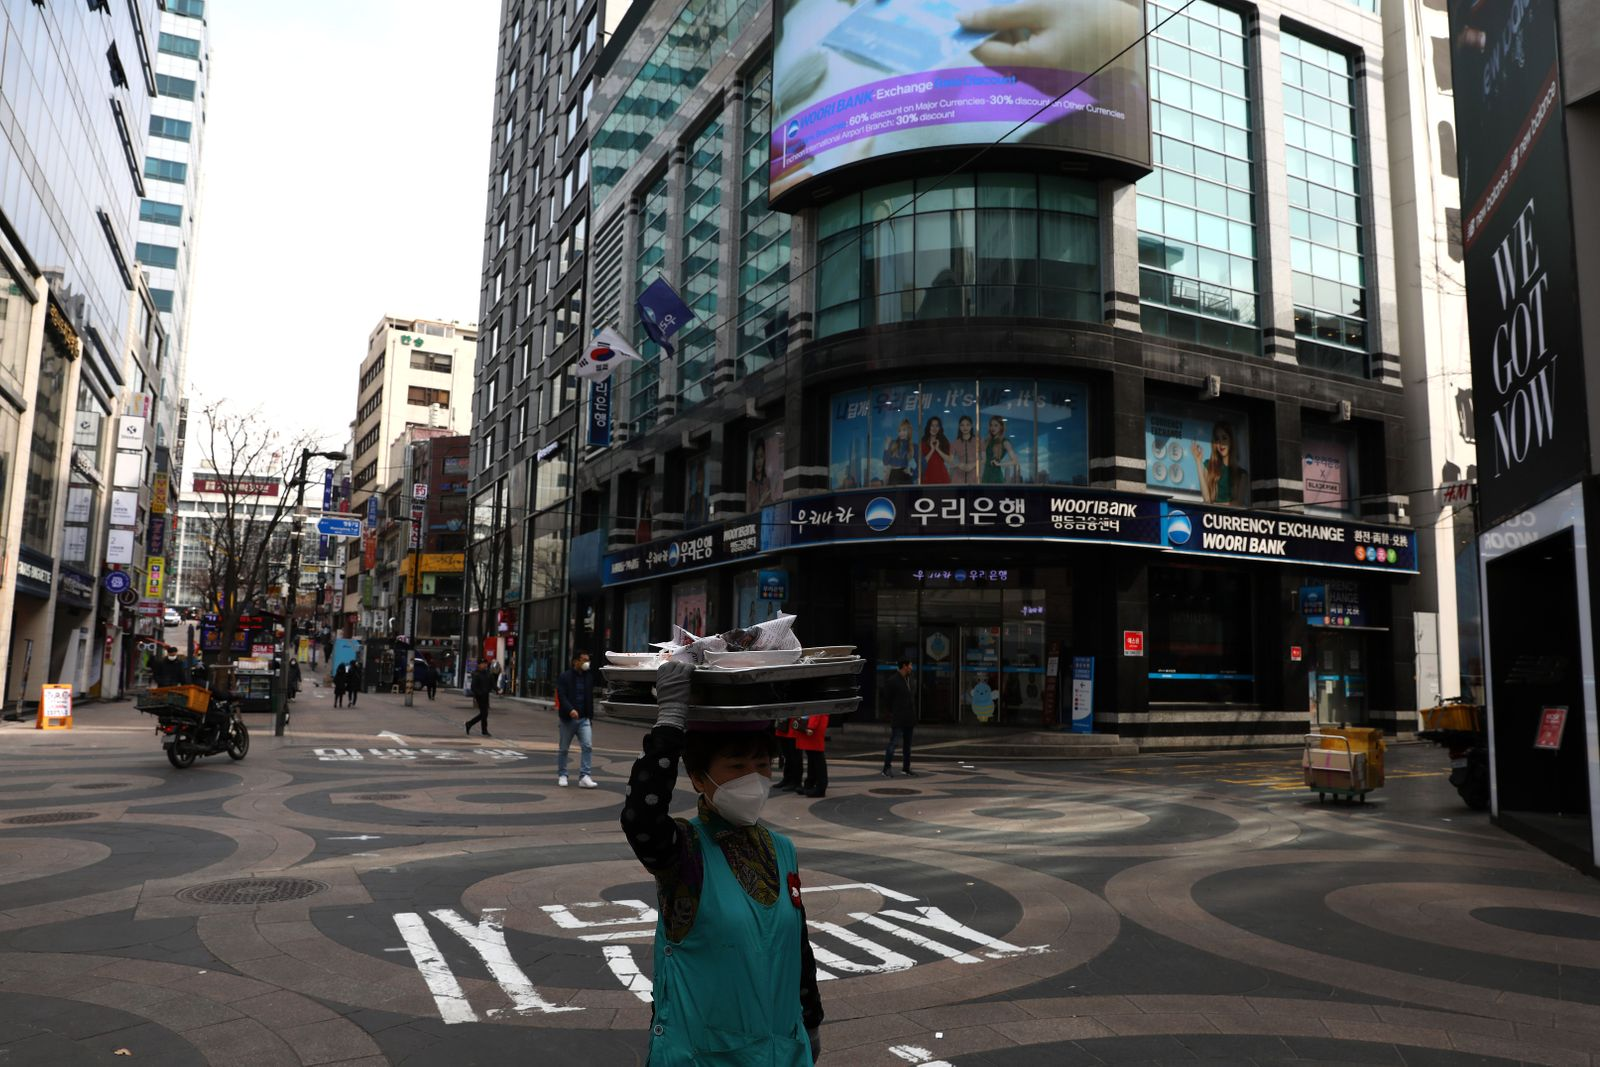 Concern In South Korea As The Wuhan Covid-19 Spreads